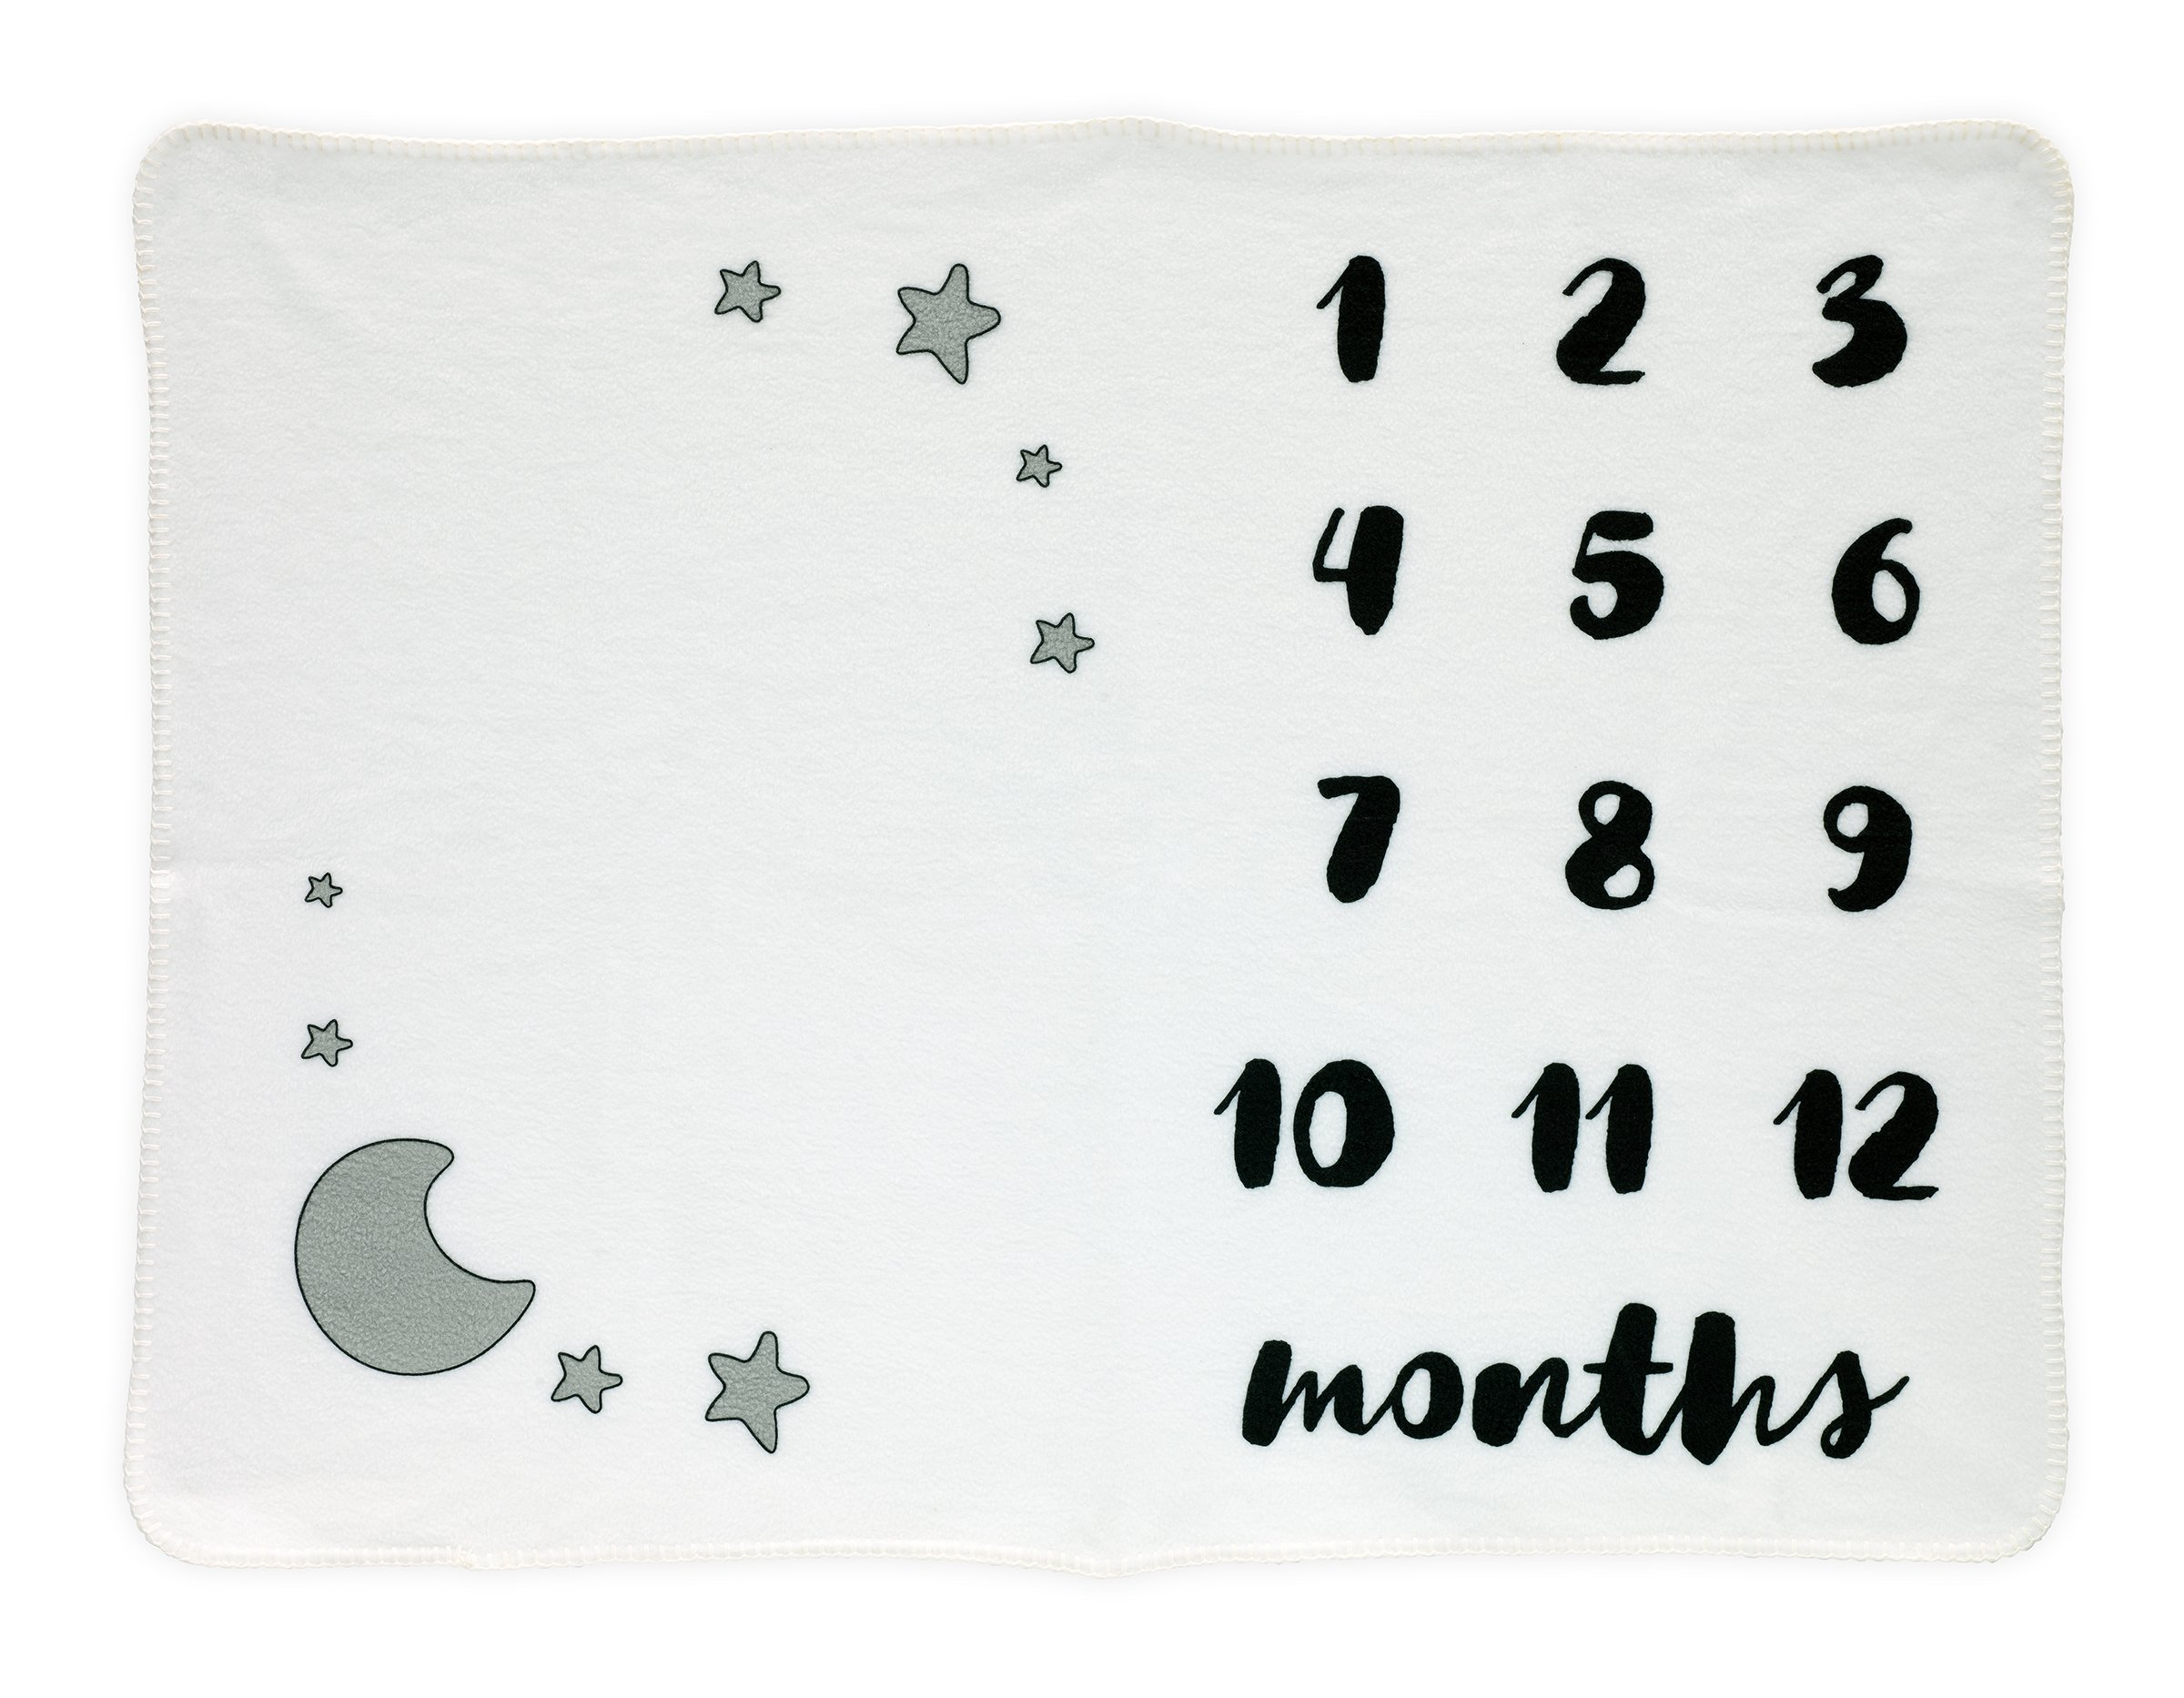 Baby Milestone Blanket | Month Blanket for Baby Pictures | Baby Monthly Milestone | Photo Backdrop Prop For Newborn and Infant | Shower Gift | Gender Neutral Unisex Boy or Girl